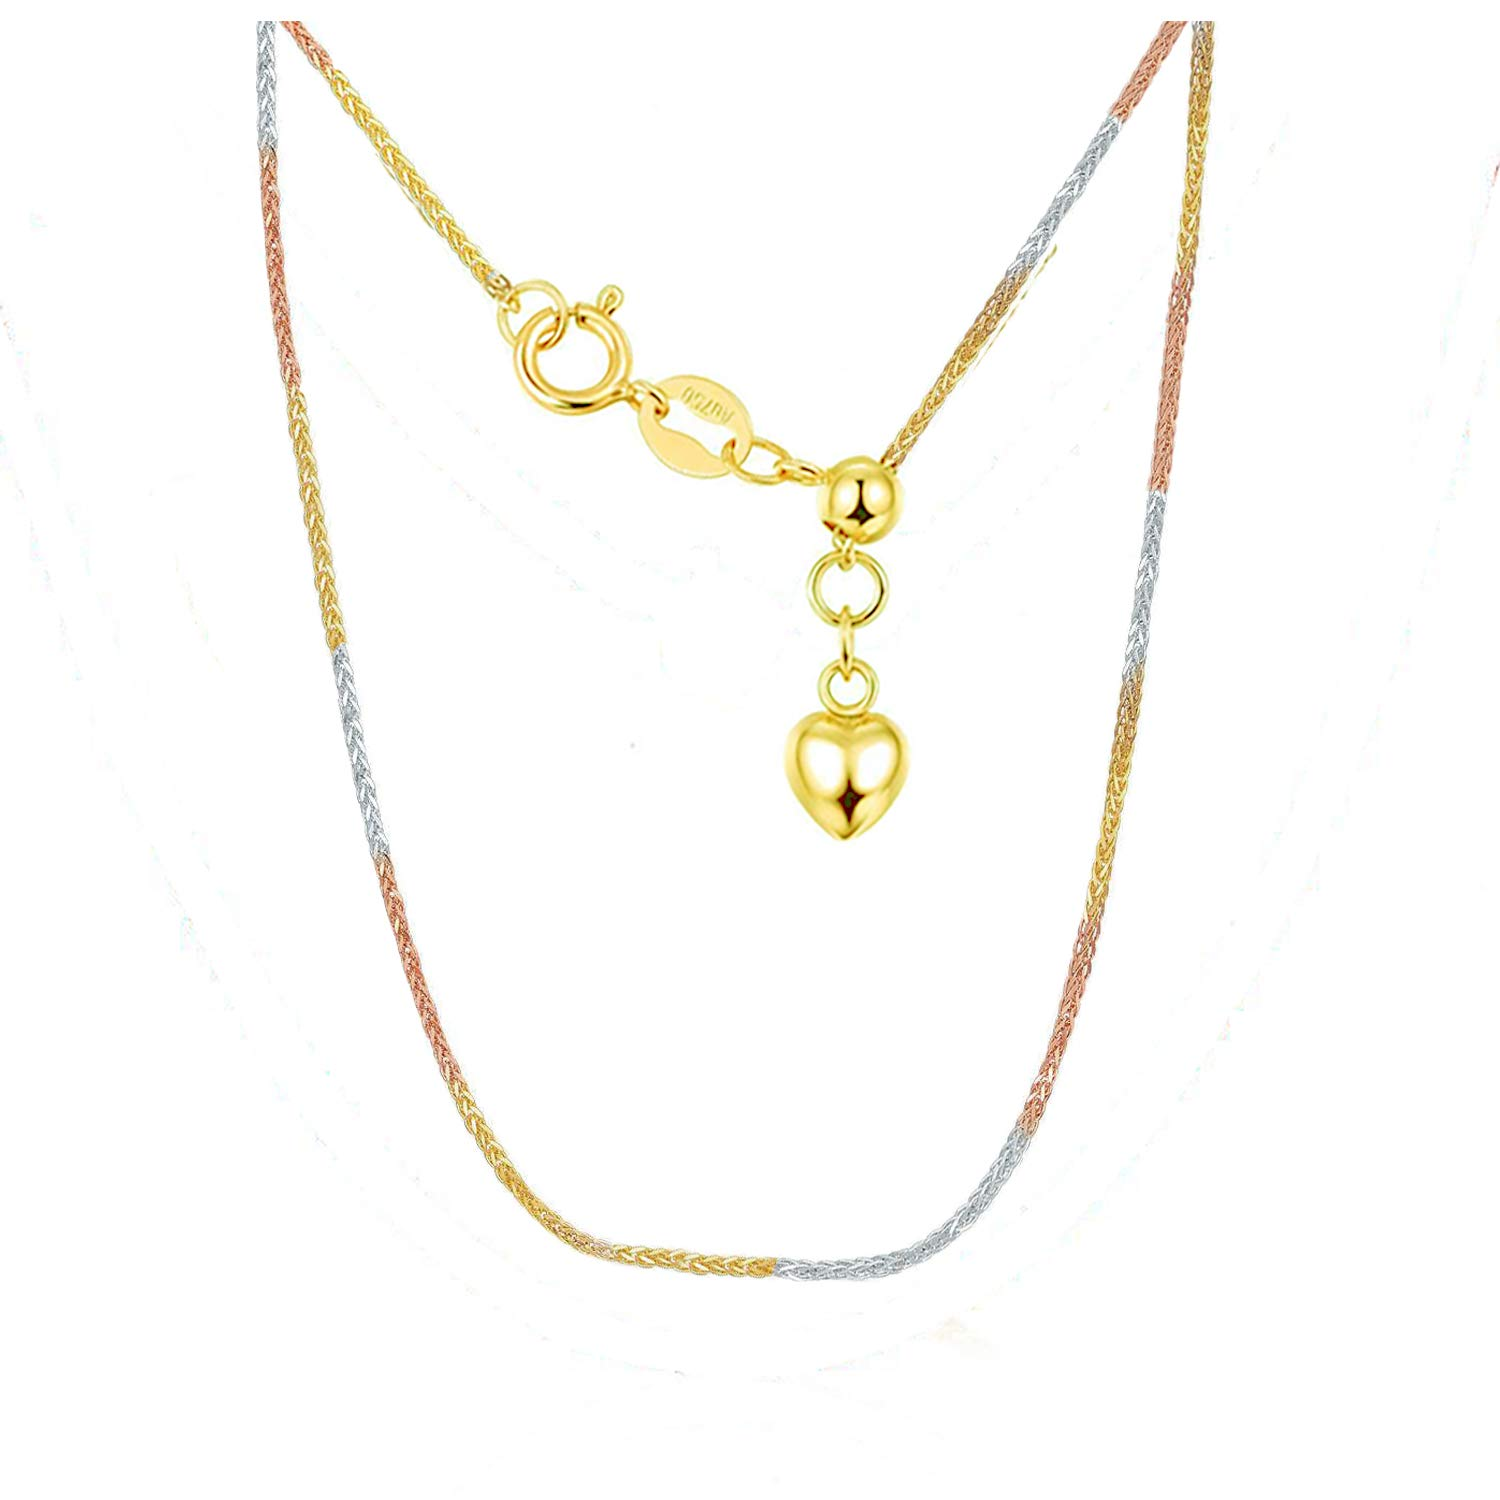 Sinya Pull Type Adjustable Foxtail Chain Yellow White Rose 3 Tone 18K Gold with 3D Heart Tag 18inch 0.85mm (White Gold Rose Gold White 3 Tone)